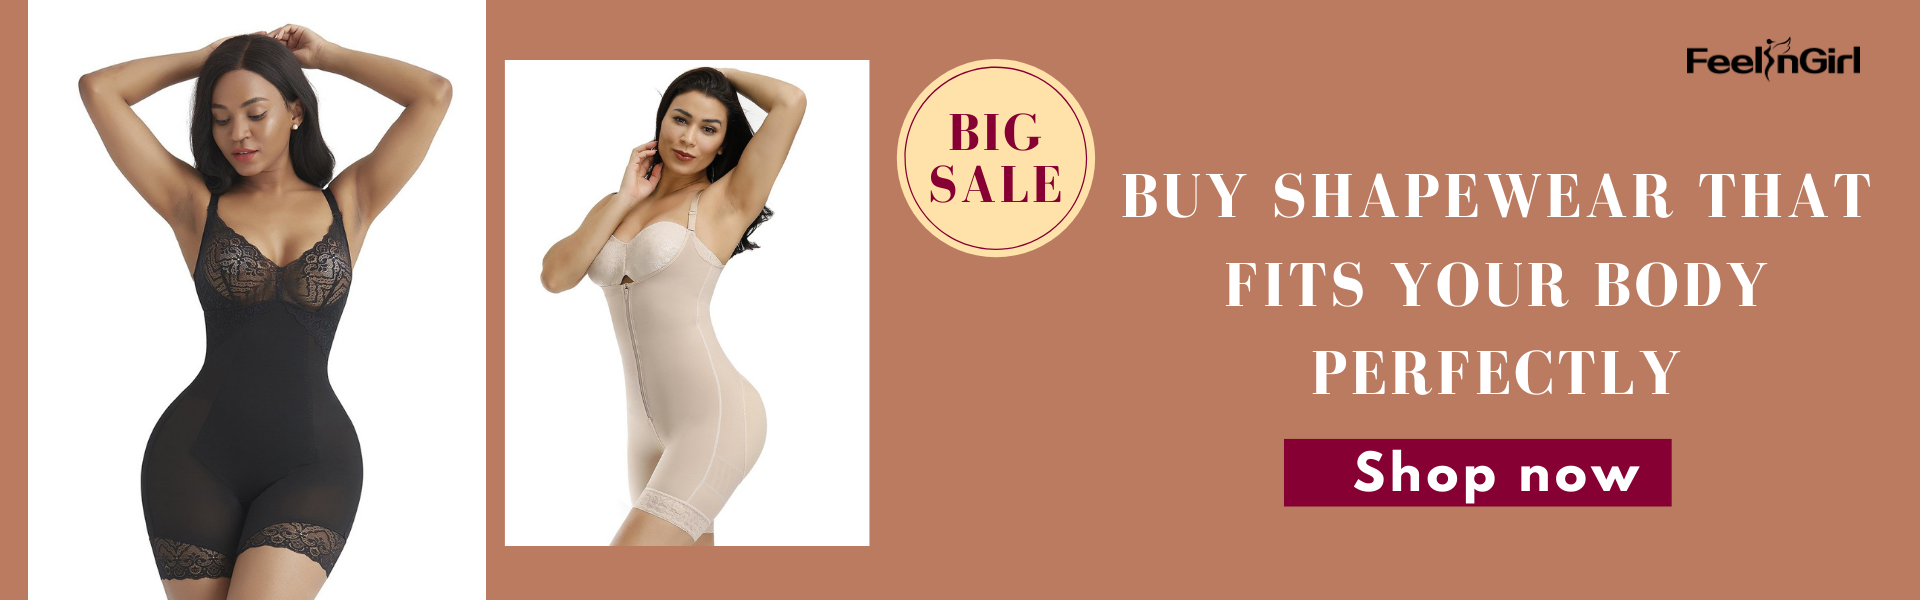 Buy Shapewear that Fits Your Body Perfectly